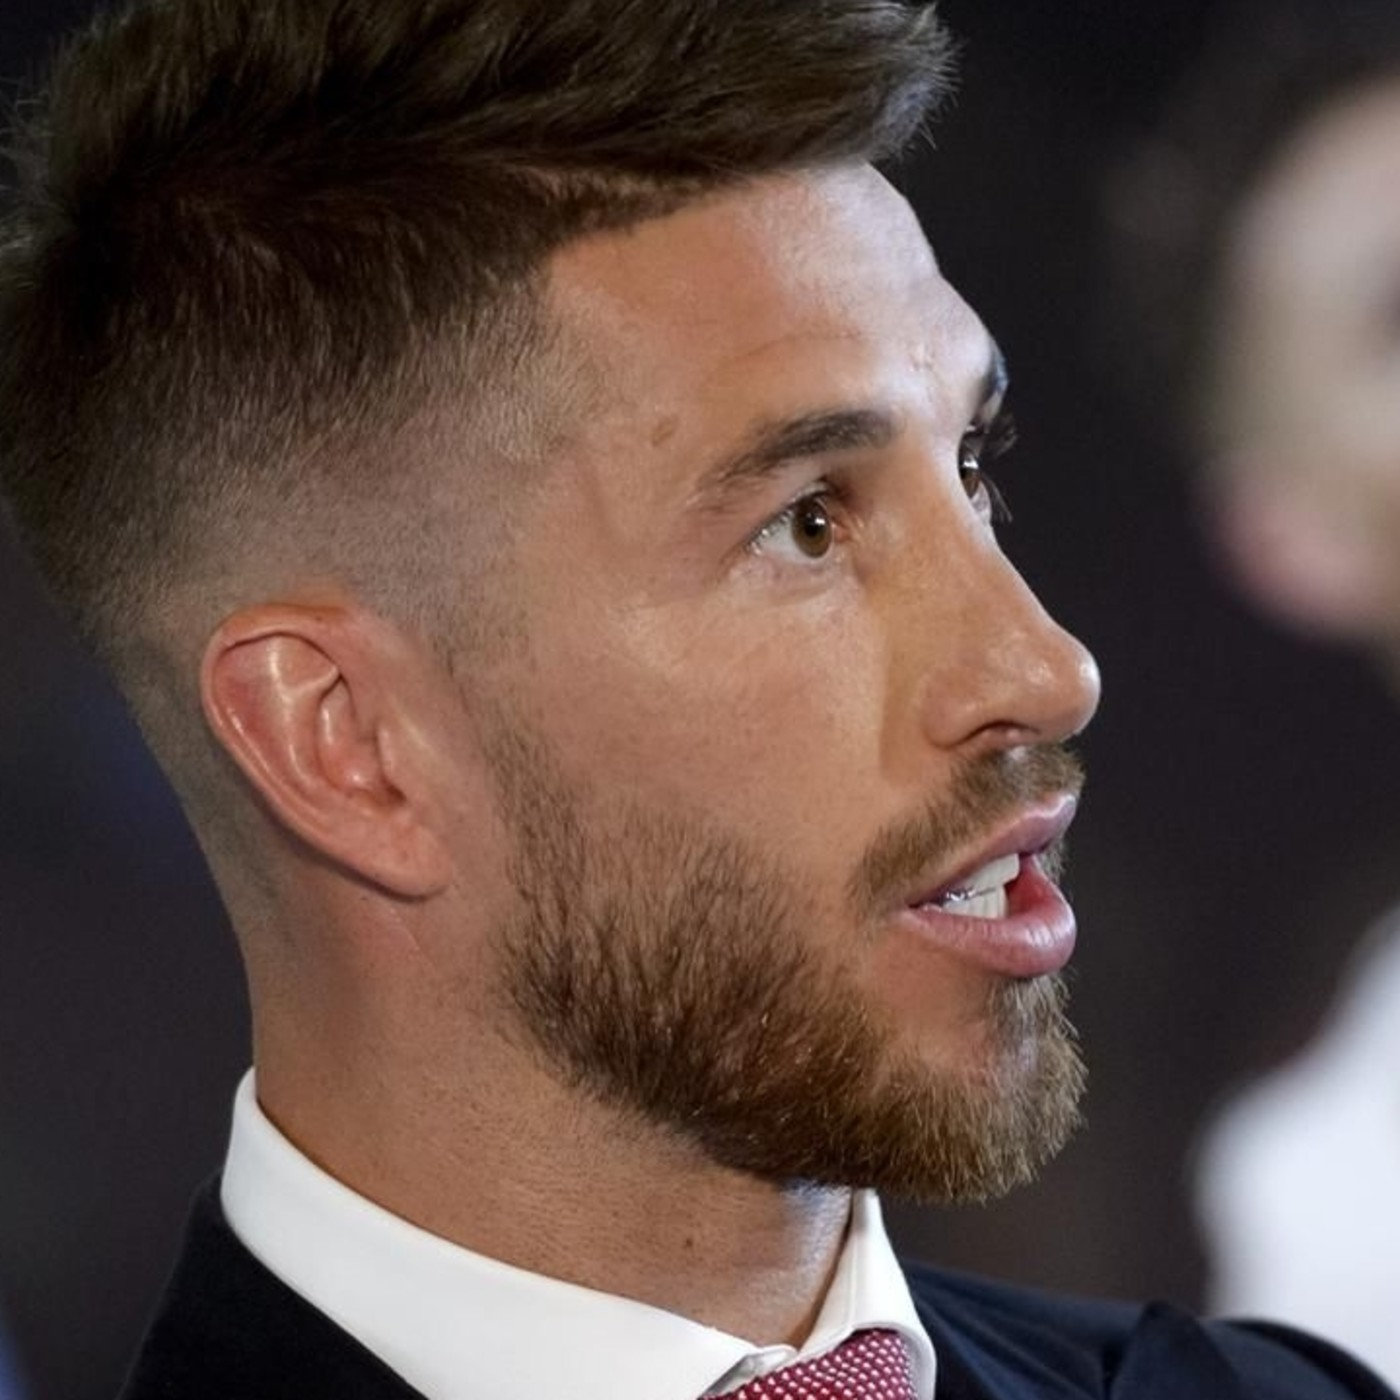 Sergio Ramos Haircut Tutorial Image Collections Haircut Ideas - Aguero haircut name